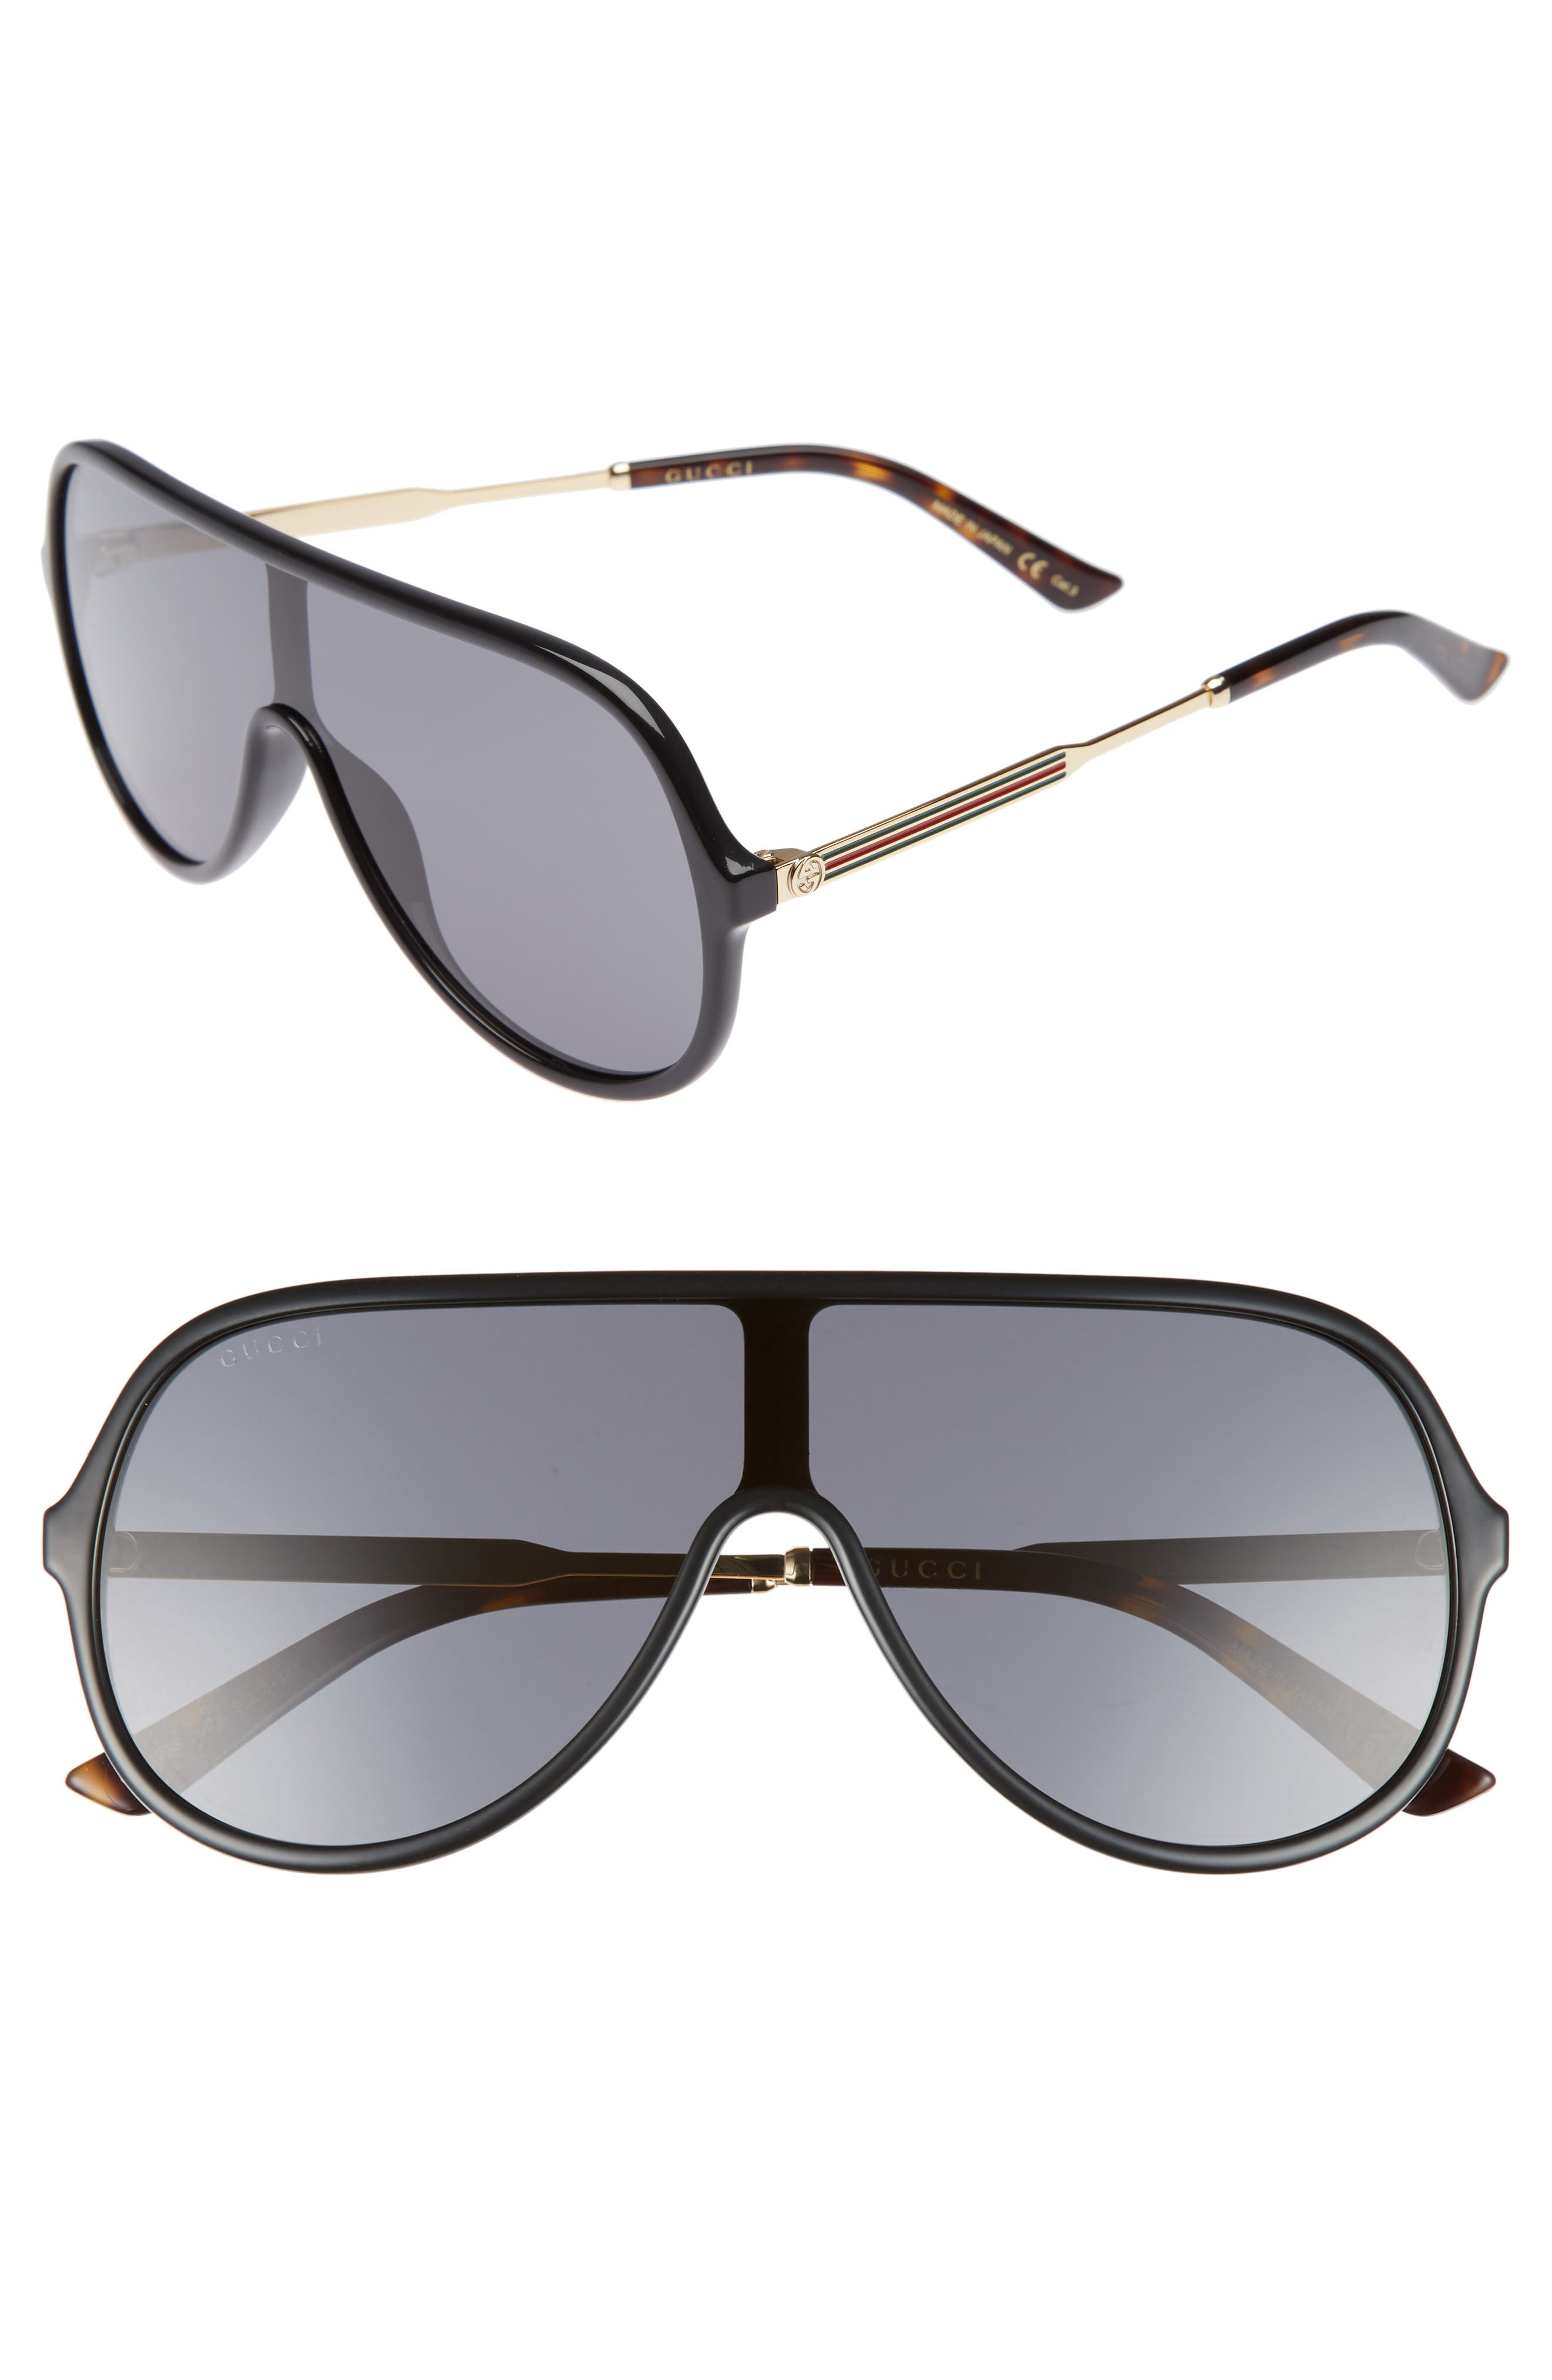 Main Image - Gucci 99mm Oversize Shield Sunglasses